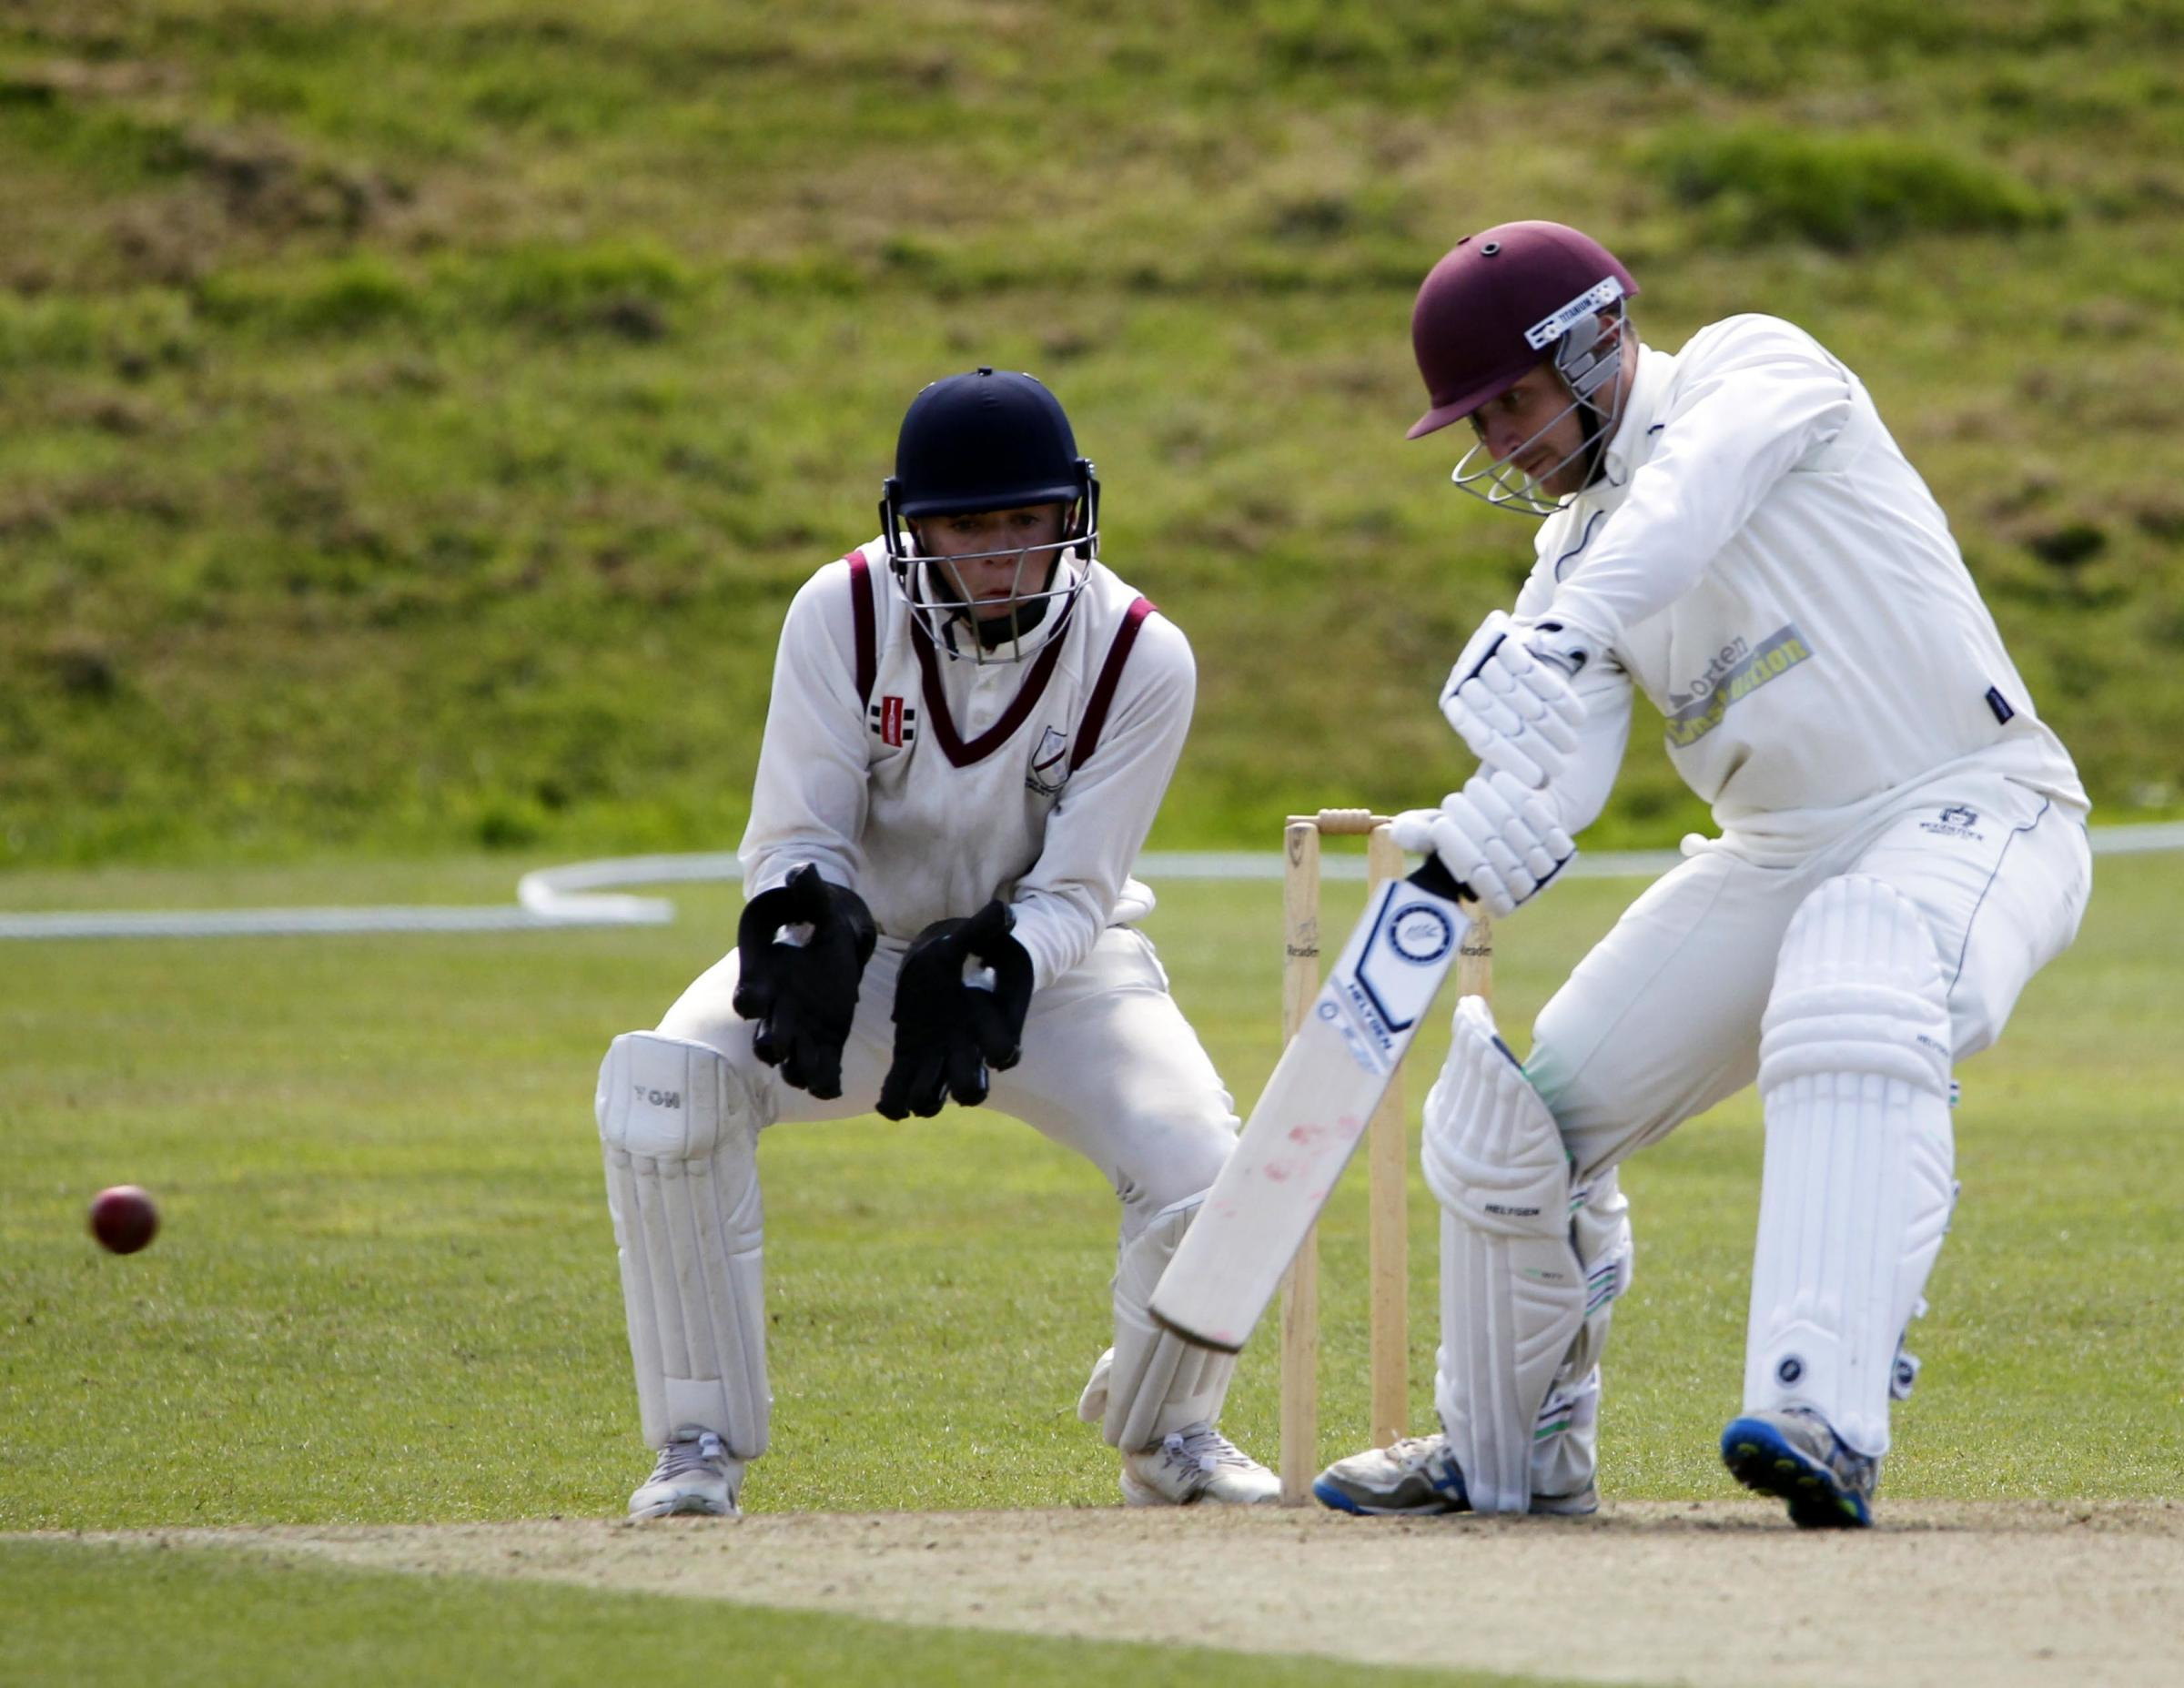 Colwyn Bay were beaten at New Brighton (Photo by Dave Thomas)